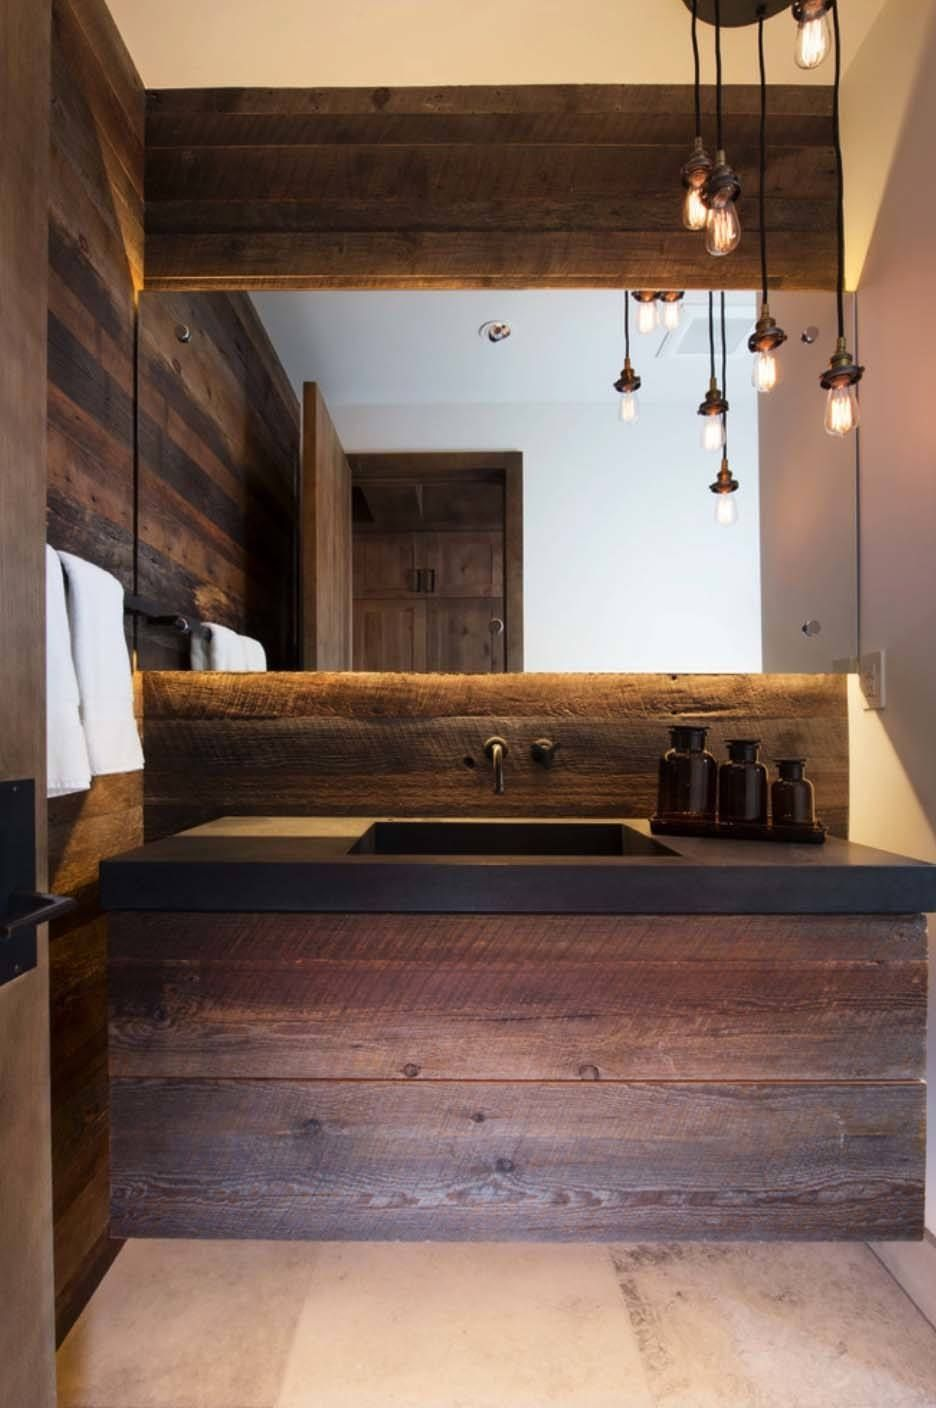 Best Top 35 Pinterest Bathroom Pins Of 2016 Bathroom Interior 400 x 300